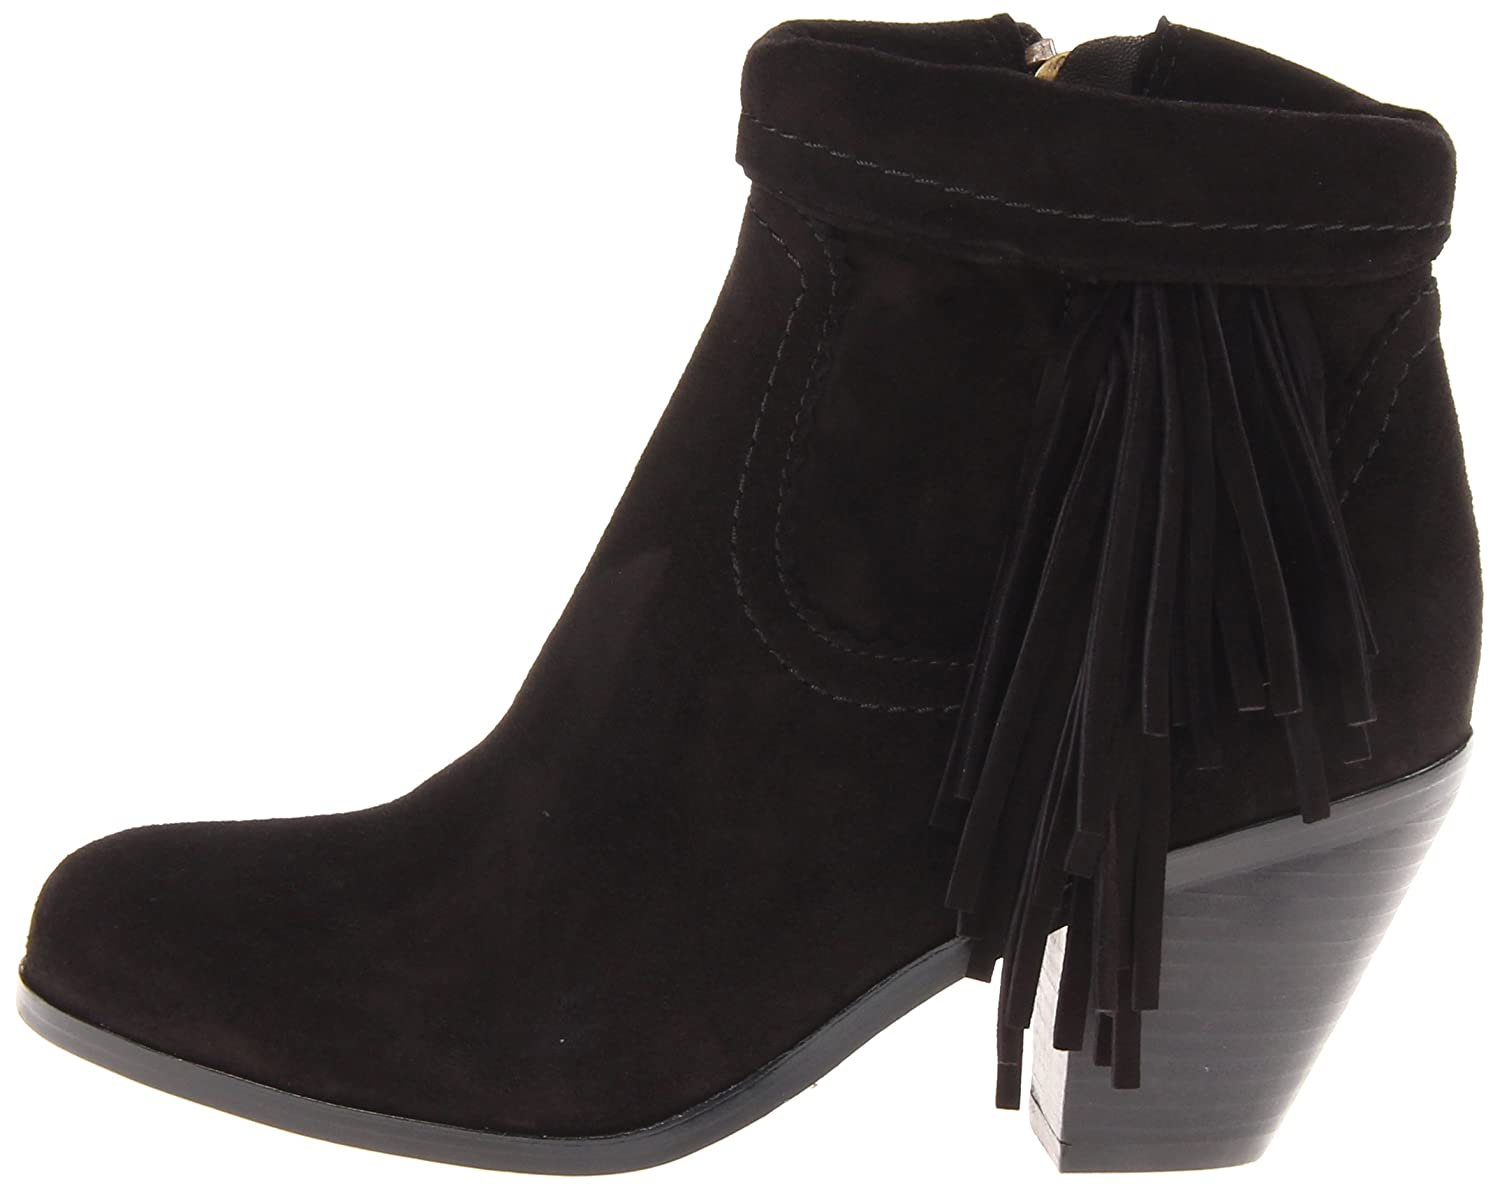 Sam Edelman Women's B(M) Louie Fringe-Trimmed Ankle Boot B005ON3AT6 10.5 B(M) Women's US|Black Suede acd763